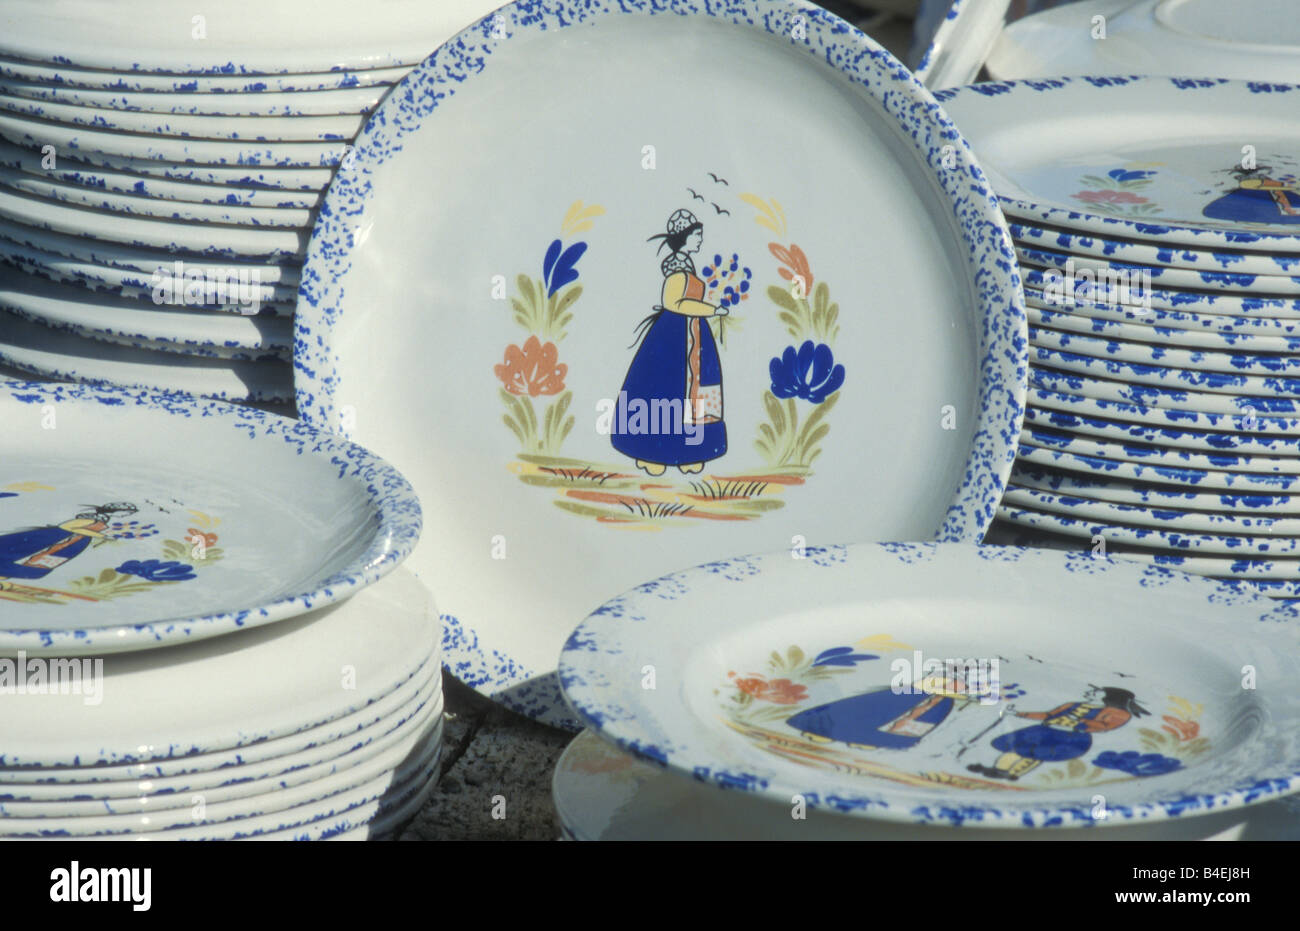 Painted Plates Ceramic Pottery Souvenir Bretagne France & Painted Plates Ceramic Pottery Souvenir Bretagne France Stock Photo ...